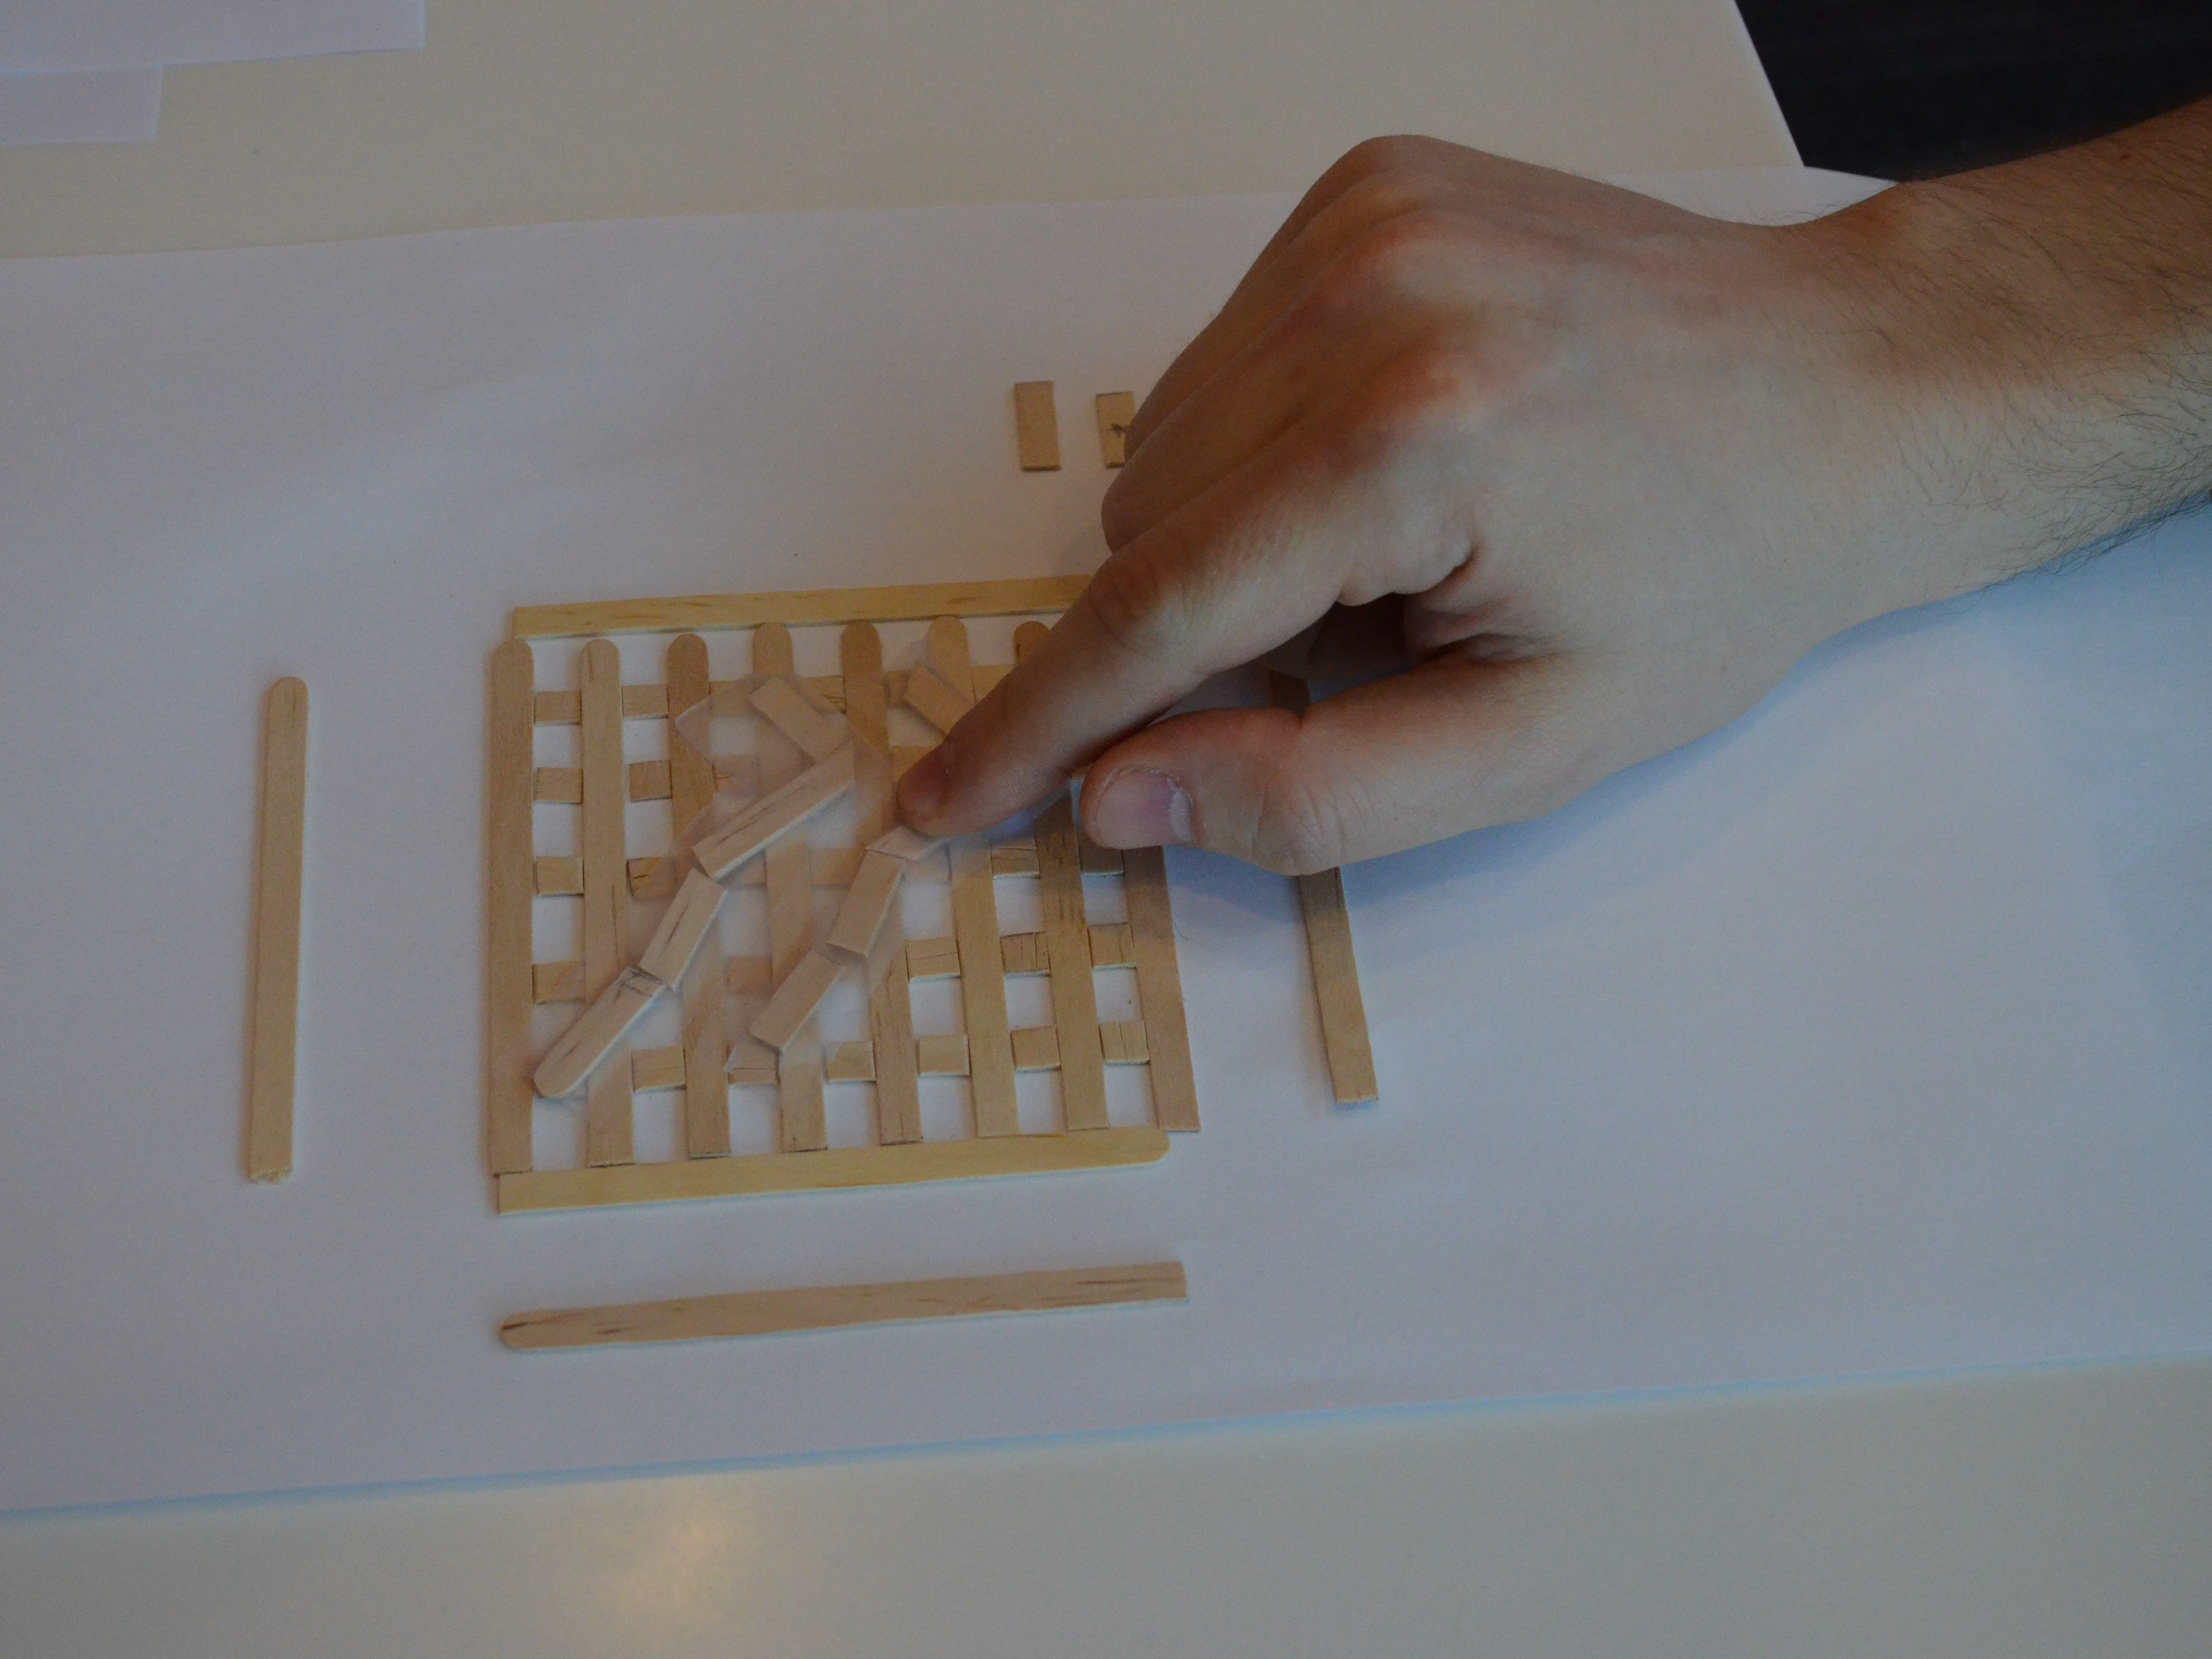 A person feels a rudimentary graph made out of popsicle sticks.